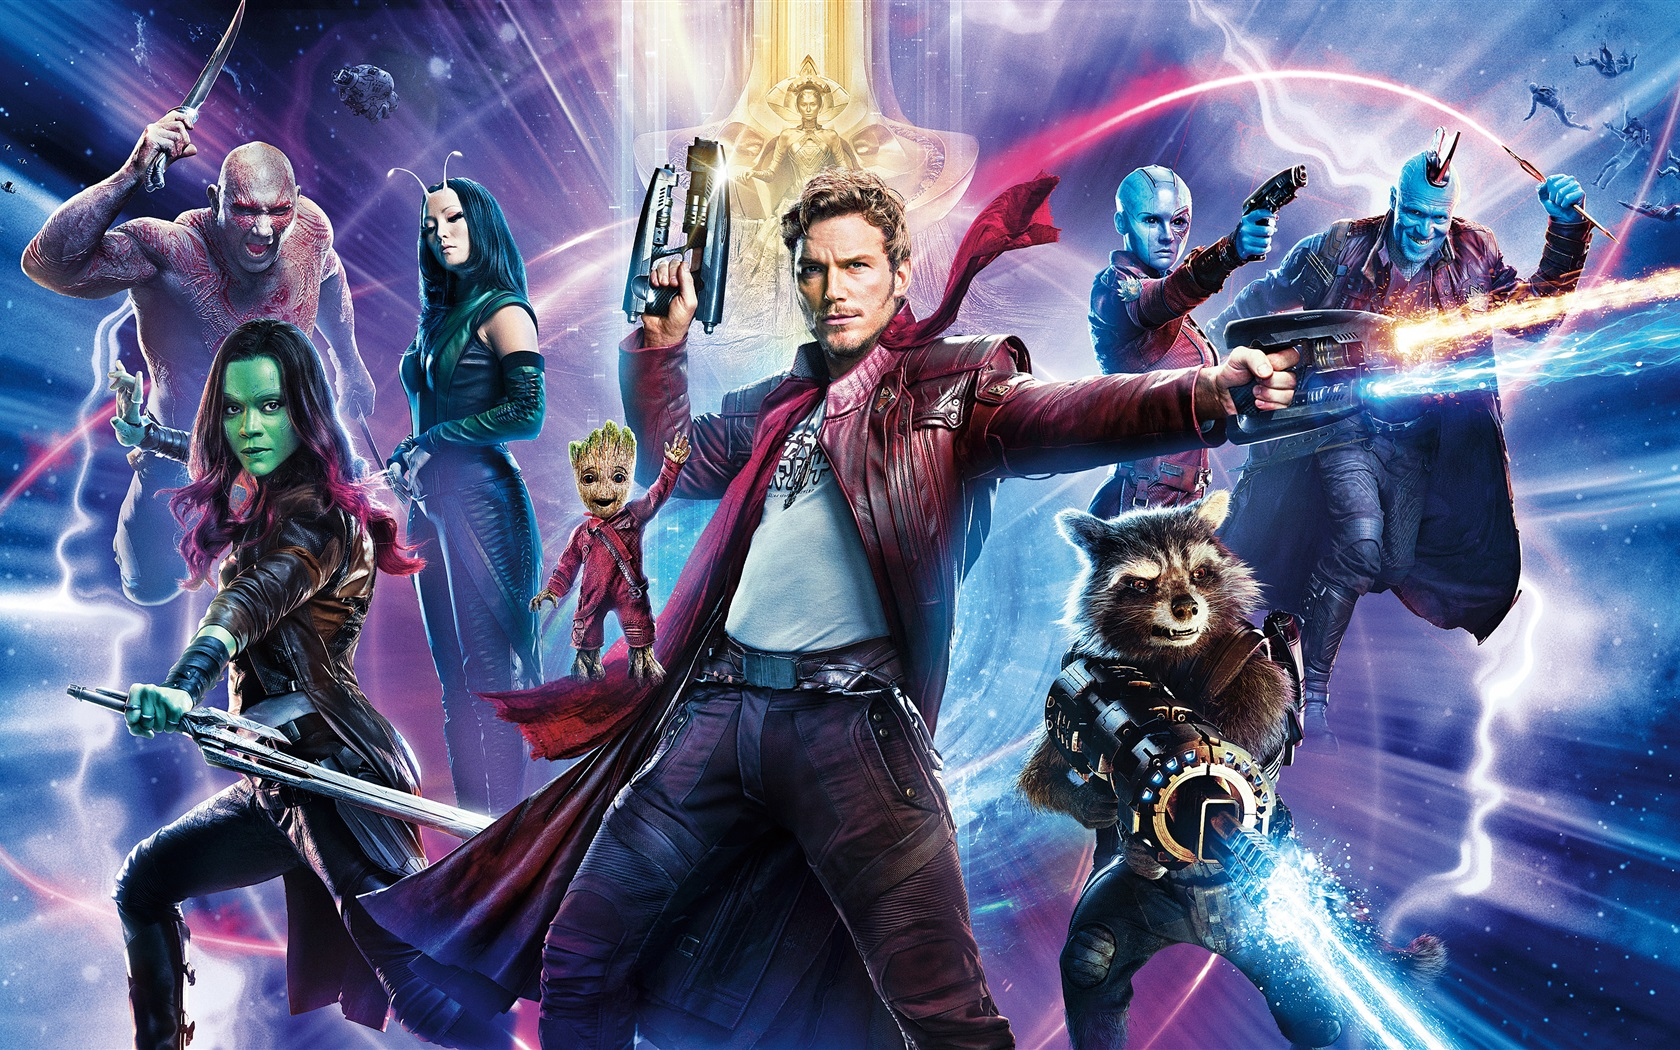 Guardians Of The Galaxy Vol 2 Wallpaper: 2017 Movie HD, Guardians Of The Galaxy Vol. 2 Wallpaper